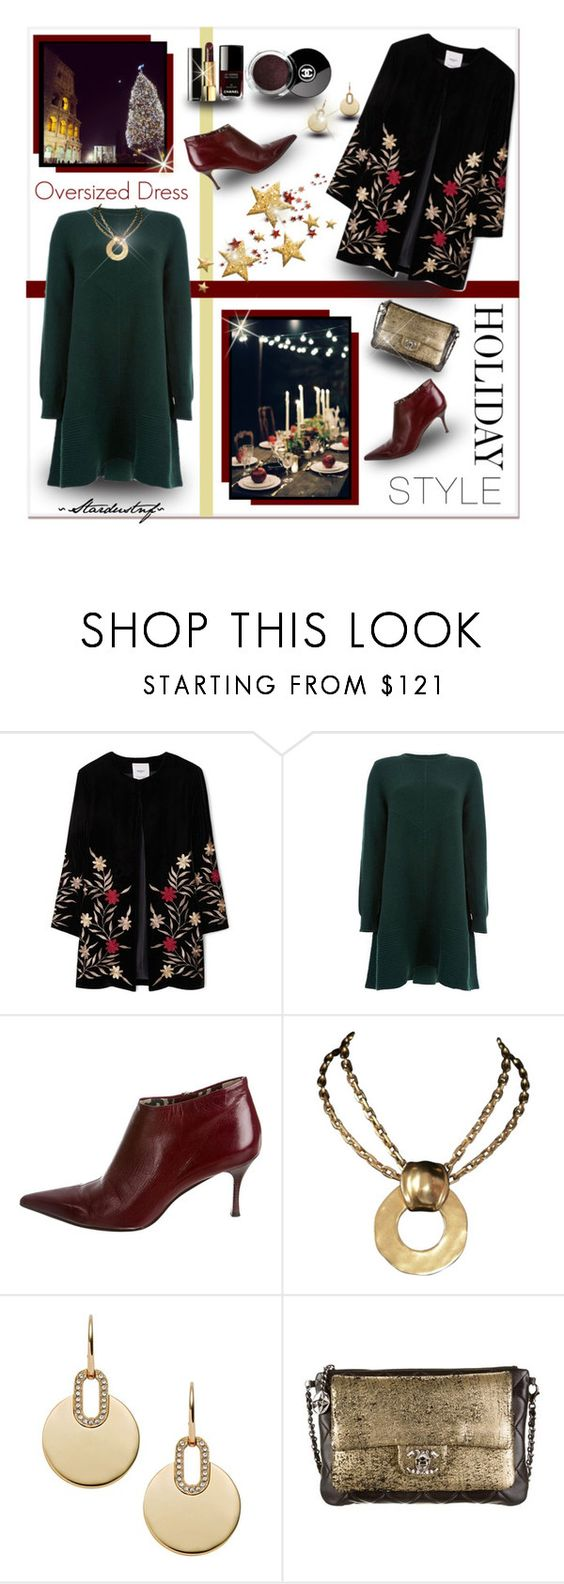 """Holiday Style: Oversized Dress"" by stardustnf ❤ liked on Polyvore featuring Trilogy, MANGO, Proenza Schouler, Gucci, Robert Lee Morris, Michael Kors, Chanel, holidaystyle, clutchcrush and fearlesscrew"